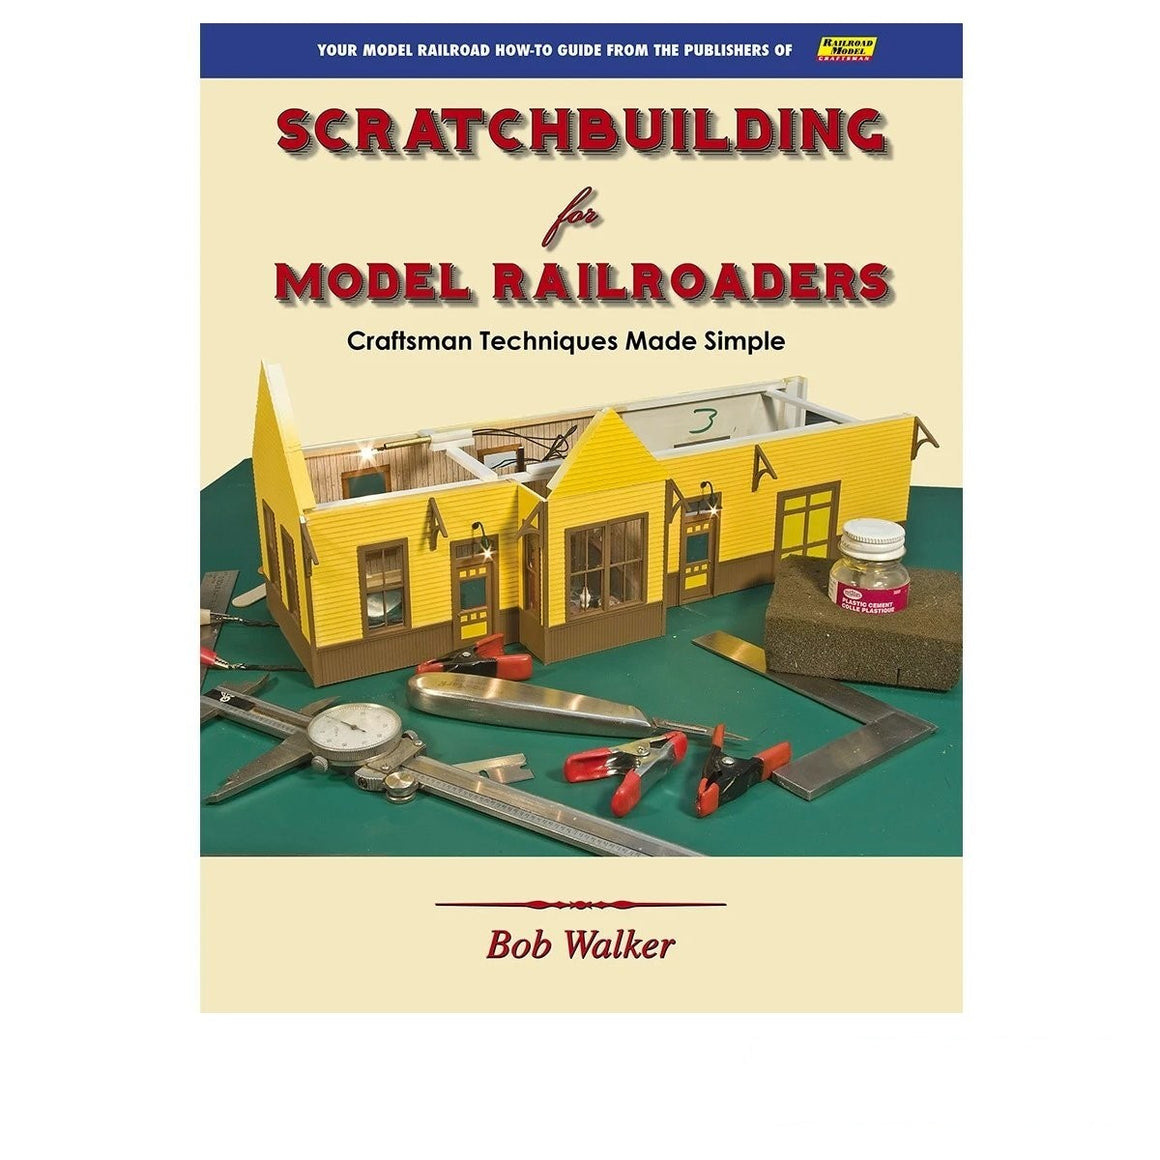 Books: Scratchbuilding for Model Railroaders